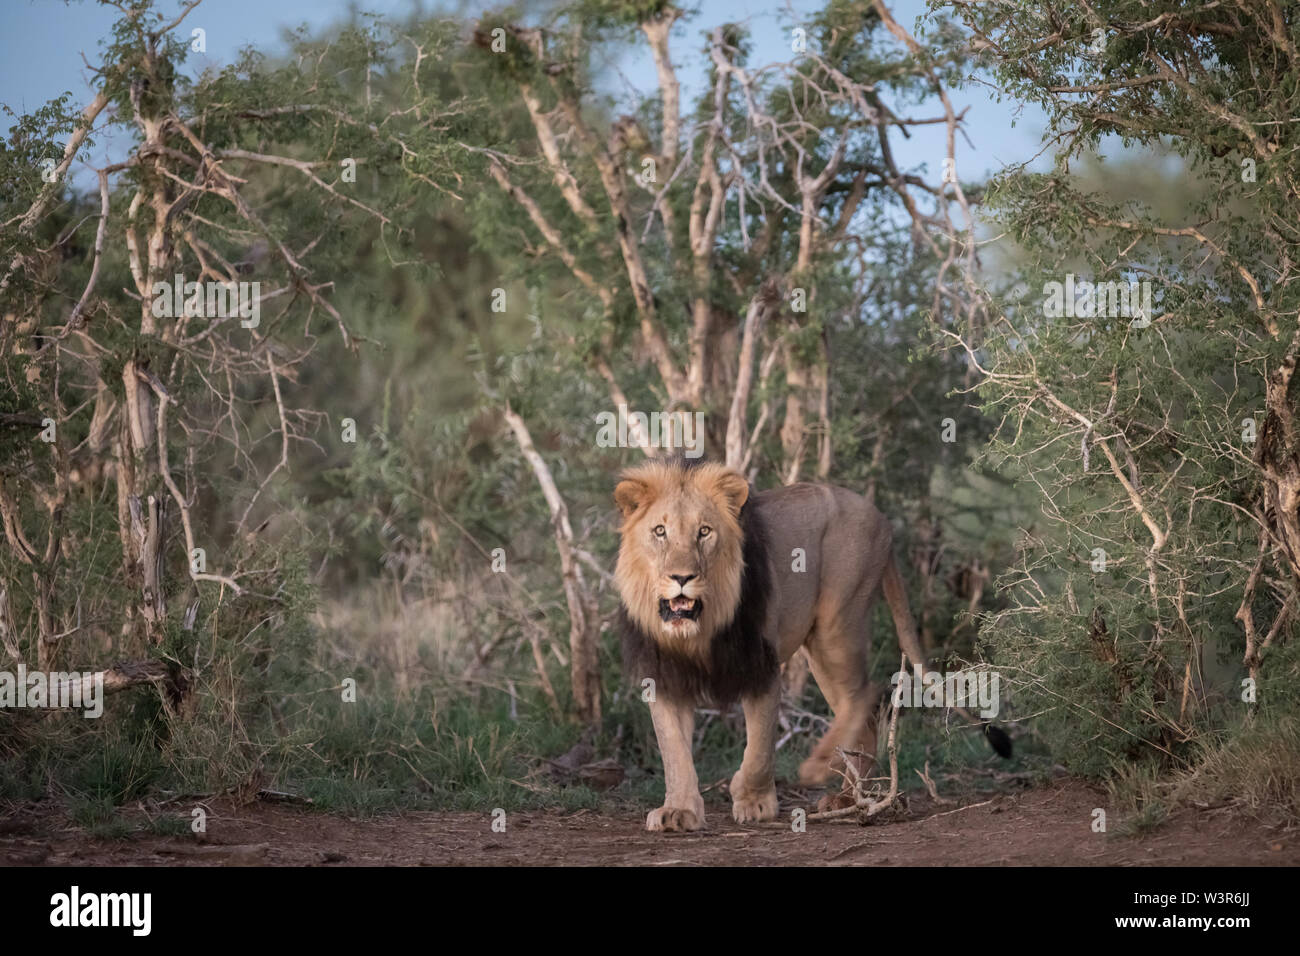 Lion, Panthera leo, are commonly seen on safari game drives in Madikwe Game Reserve, North West, South Africa. - Stock Image